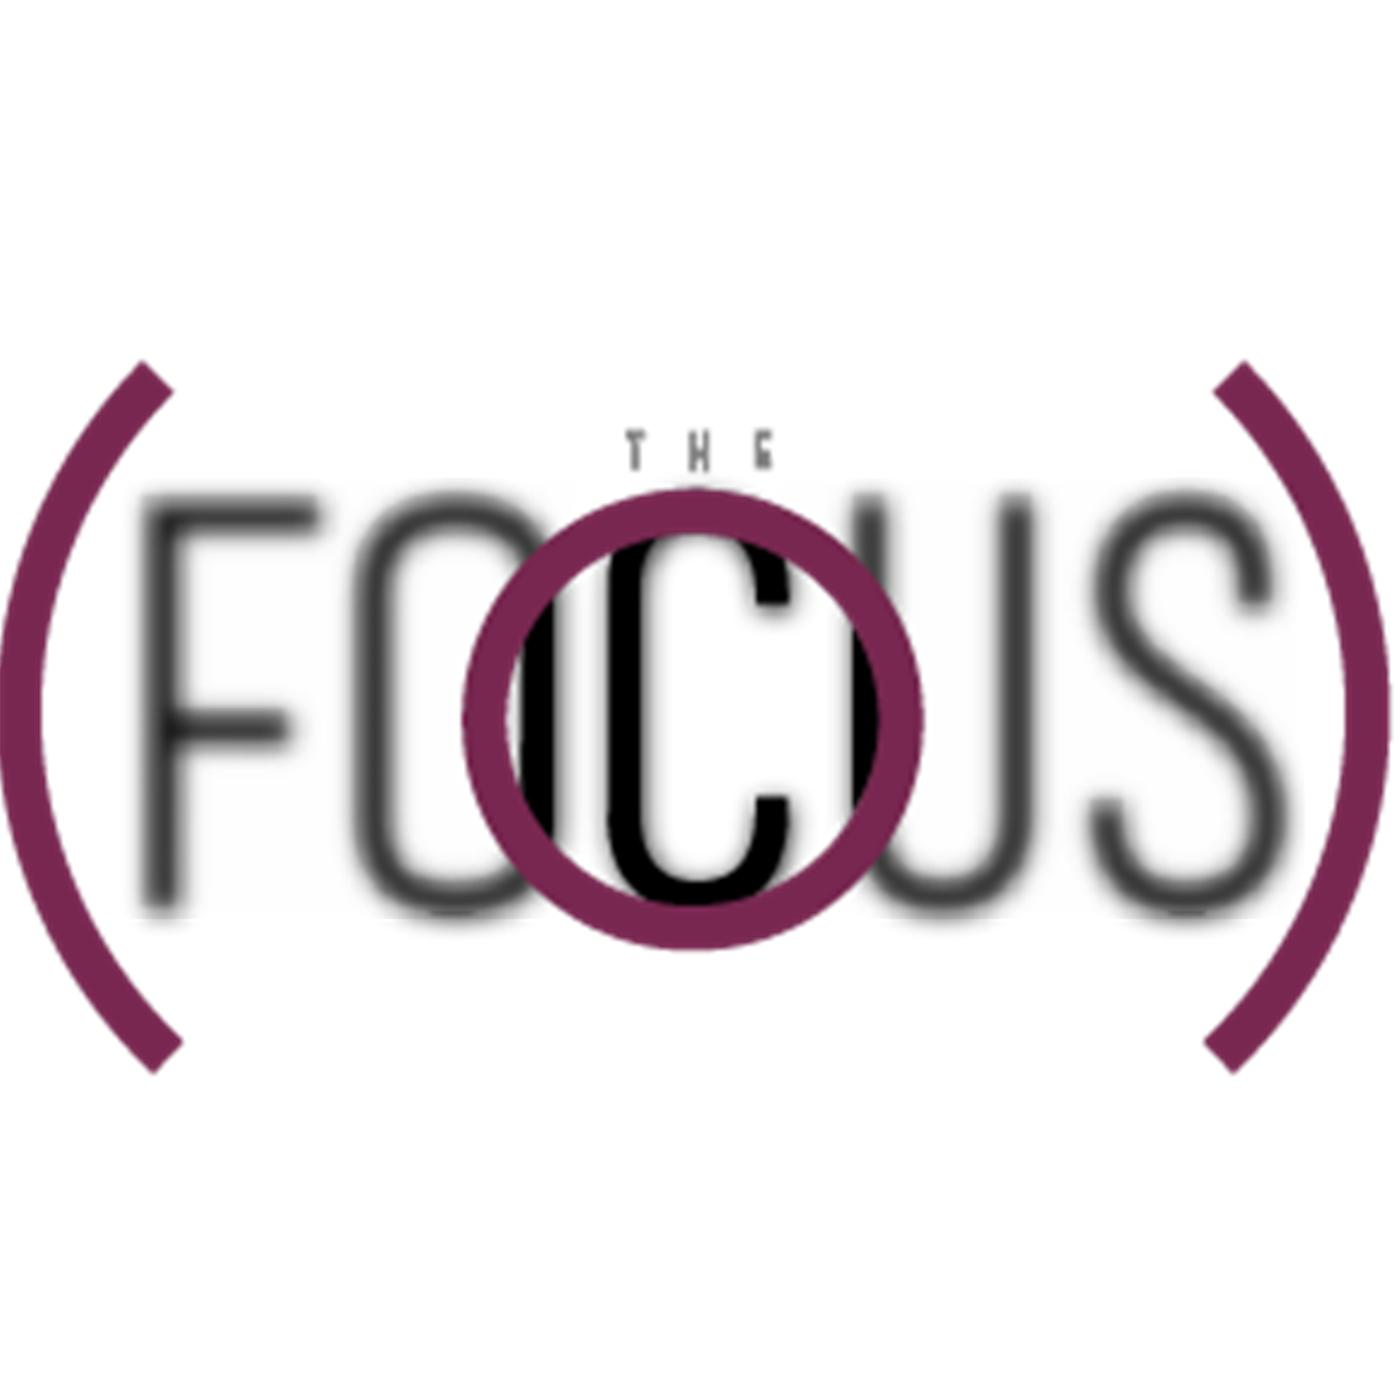 The Focus Radio interviews experts on selling, marketing, brand, leadership, business